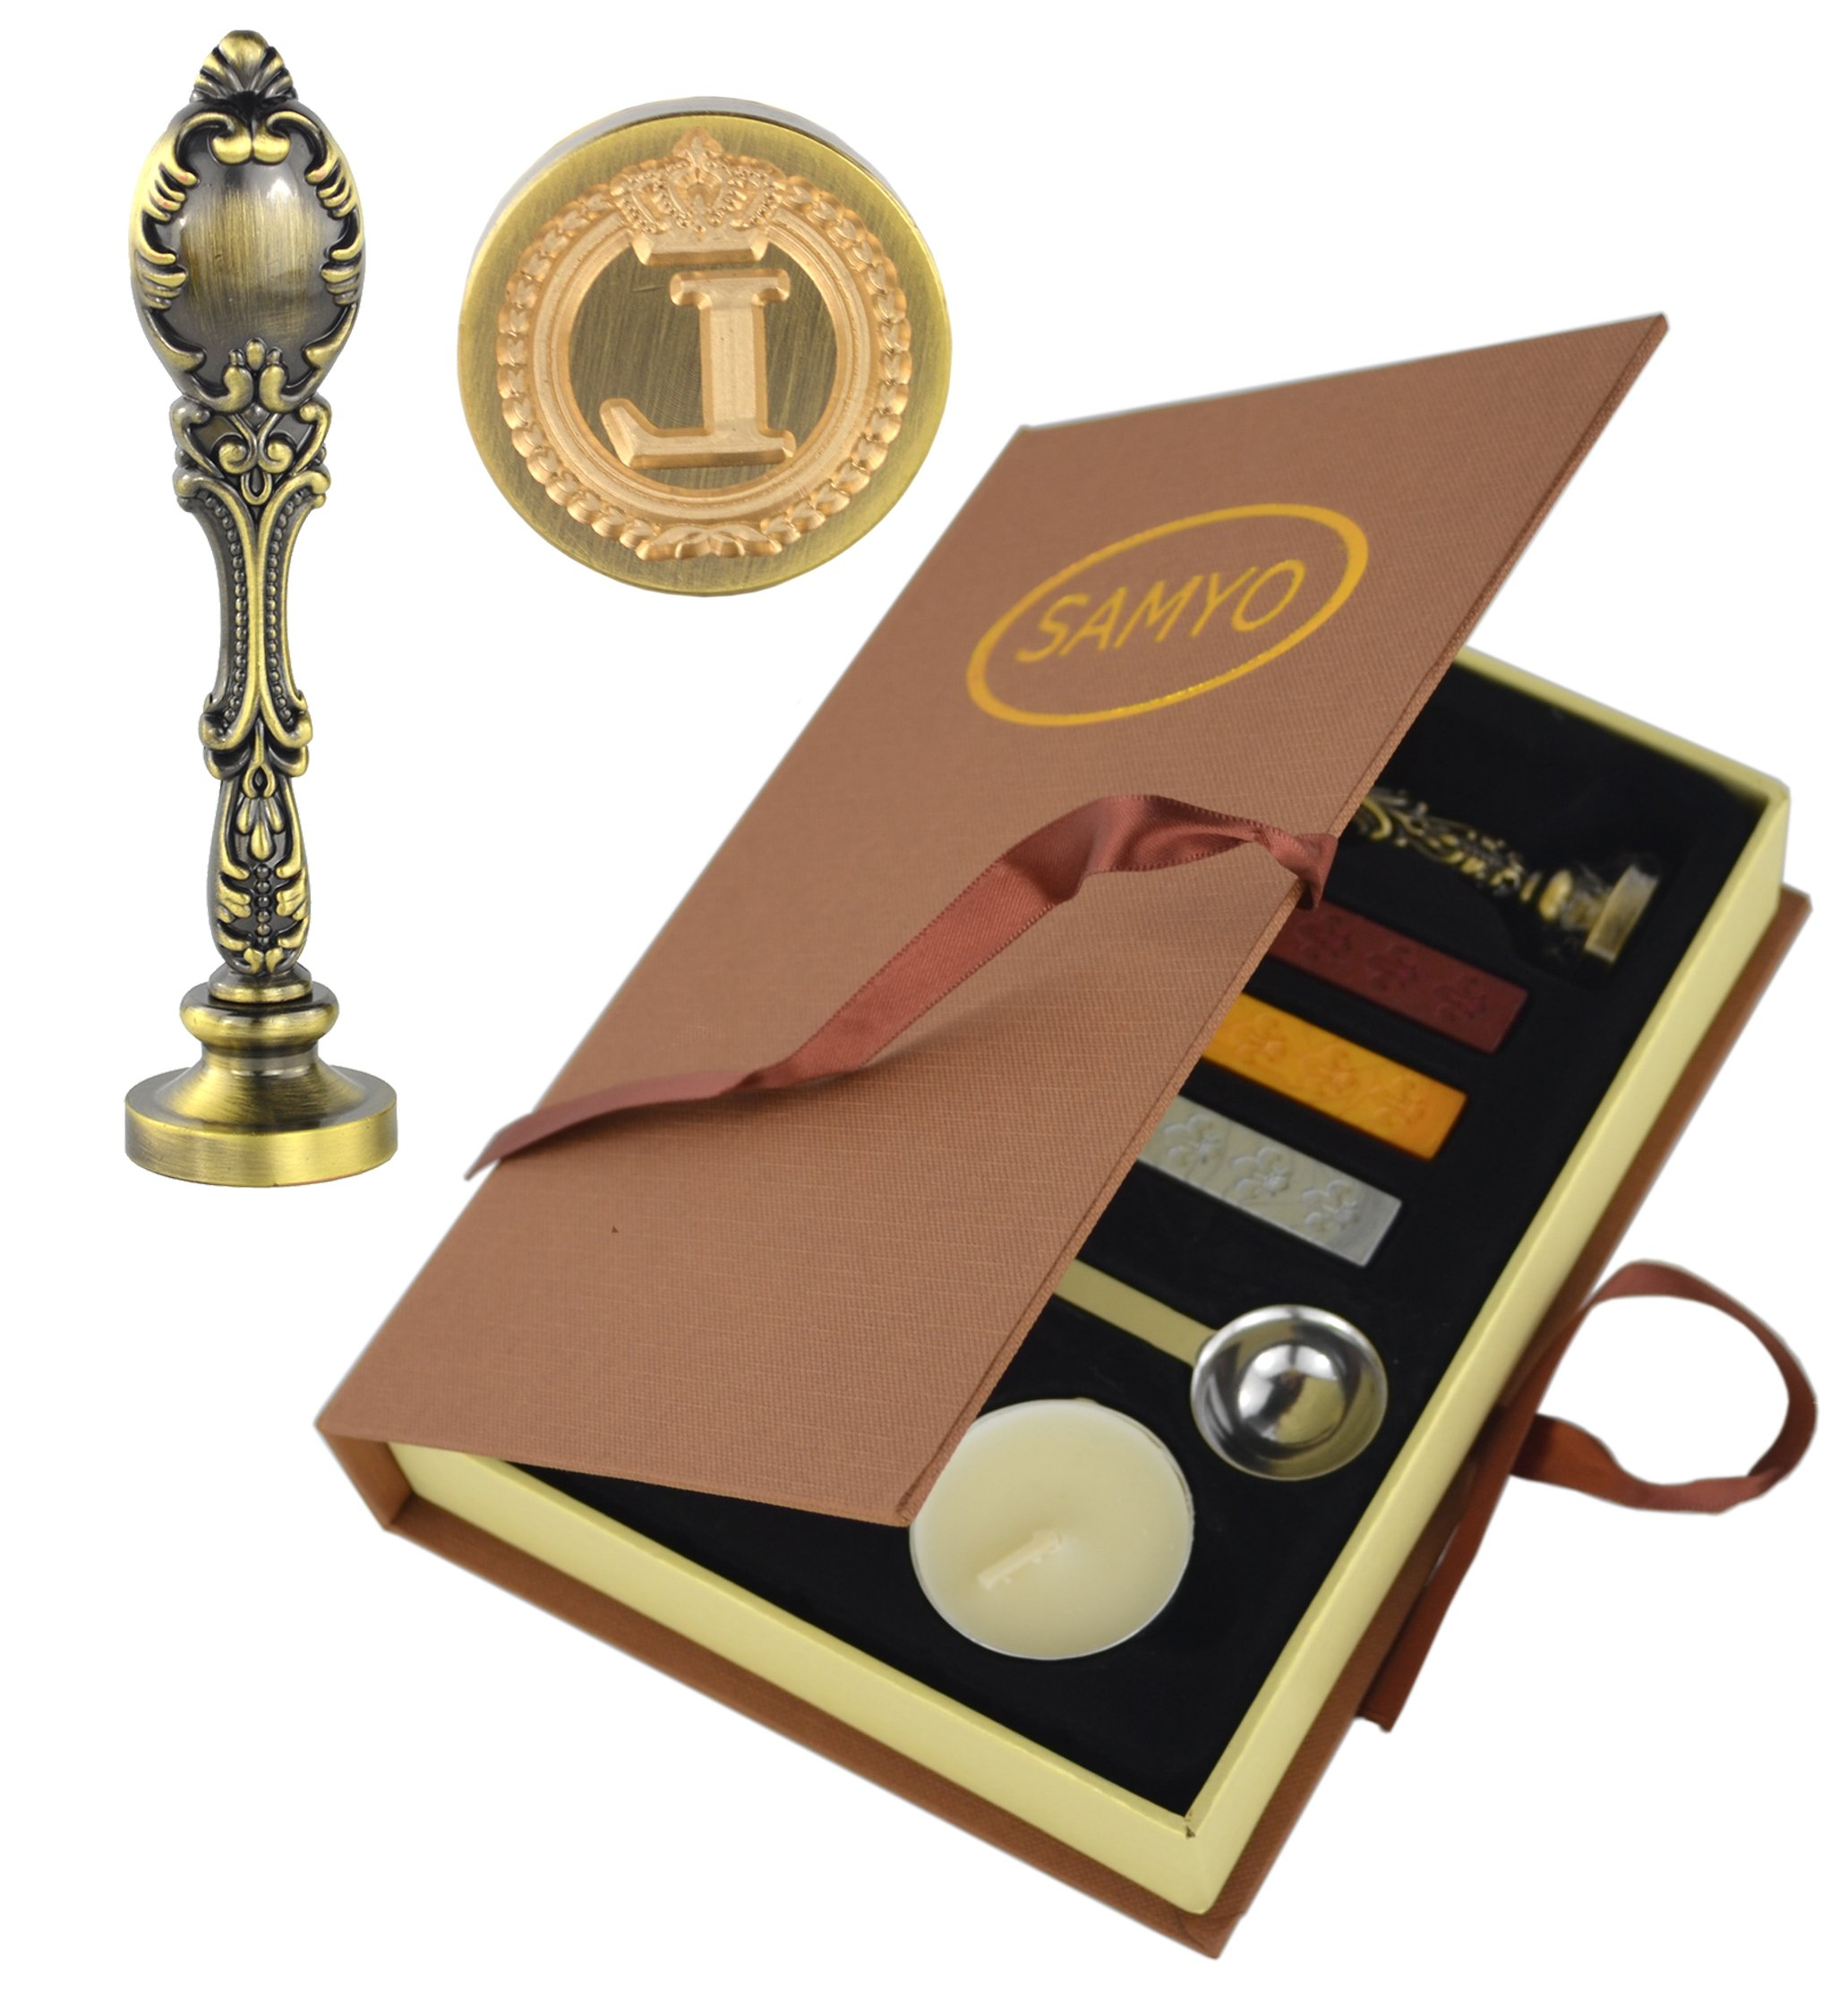 Samyo Creative Romantic Stamp Maker Classic Old-Fashioned Style Brass Color Wax Seal Sealing Stamp Vintage Antique Alphabet Initial Letter Set - (Letter L)